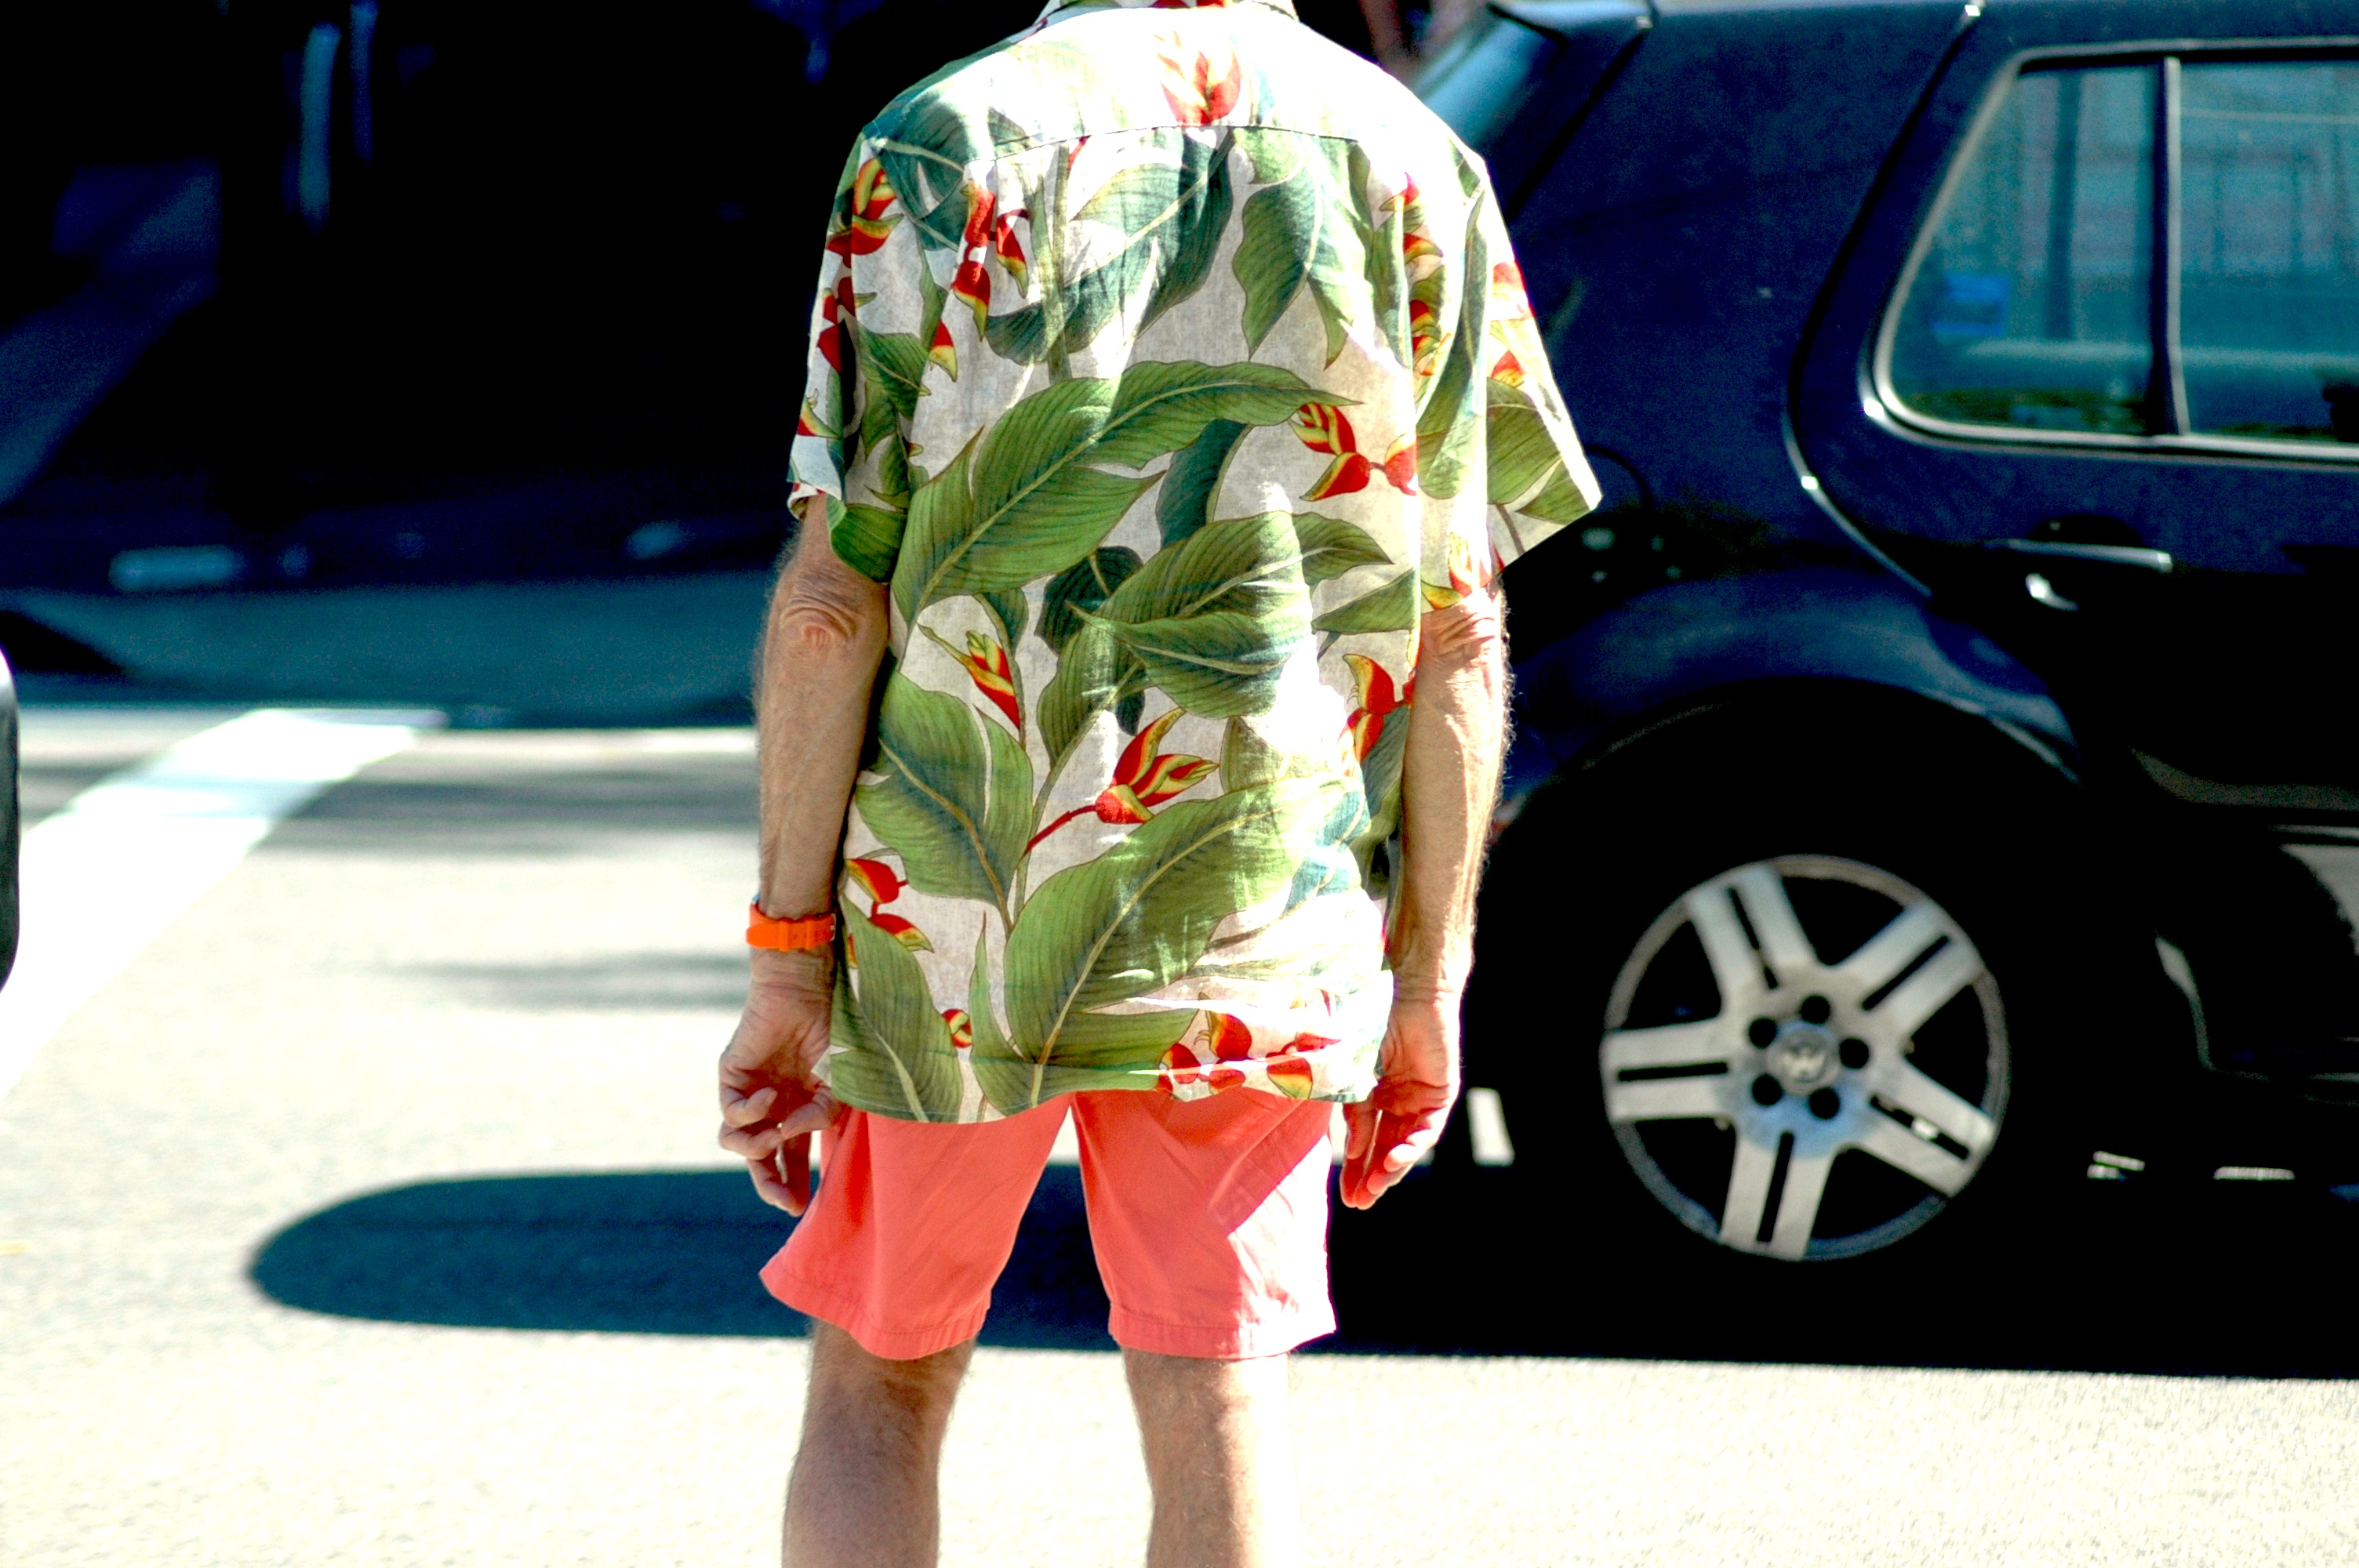 A large floral print Summer shirt, teamed with a neon orange pair of shorts and a matching neon orange watch.